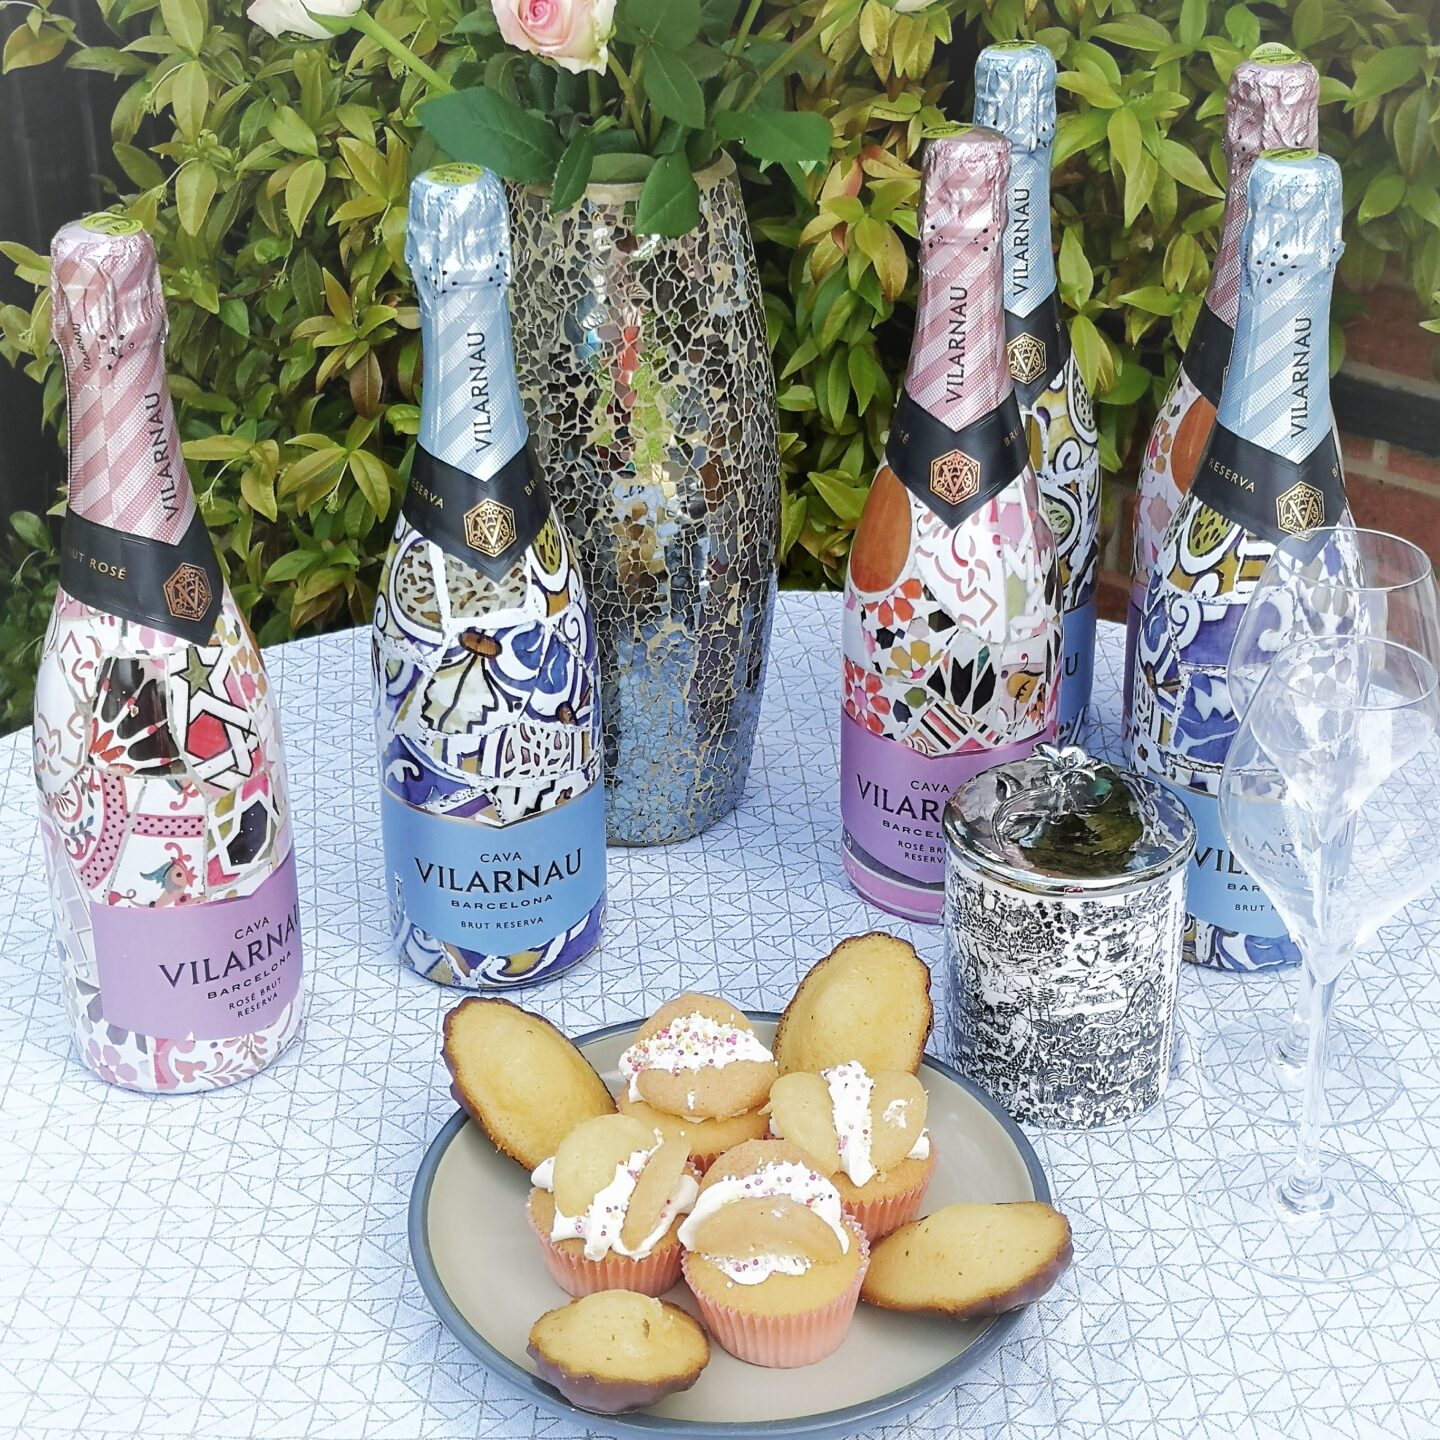 #MakeItSparkle, Premium Cava, Vilarnau, Vilarnau Cava Barcelona, Brut Reserva Rosé, Sparkling Wine, Cava, Blog Anniversary Giveaway, Win , the Frenchie Mummy, Made in Barcelona, Vilarnau Premium Cava